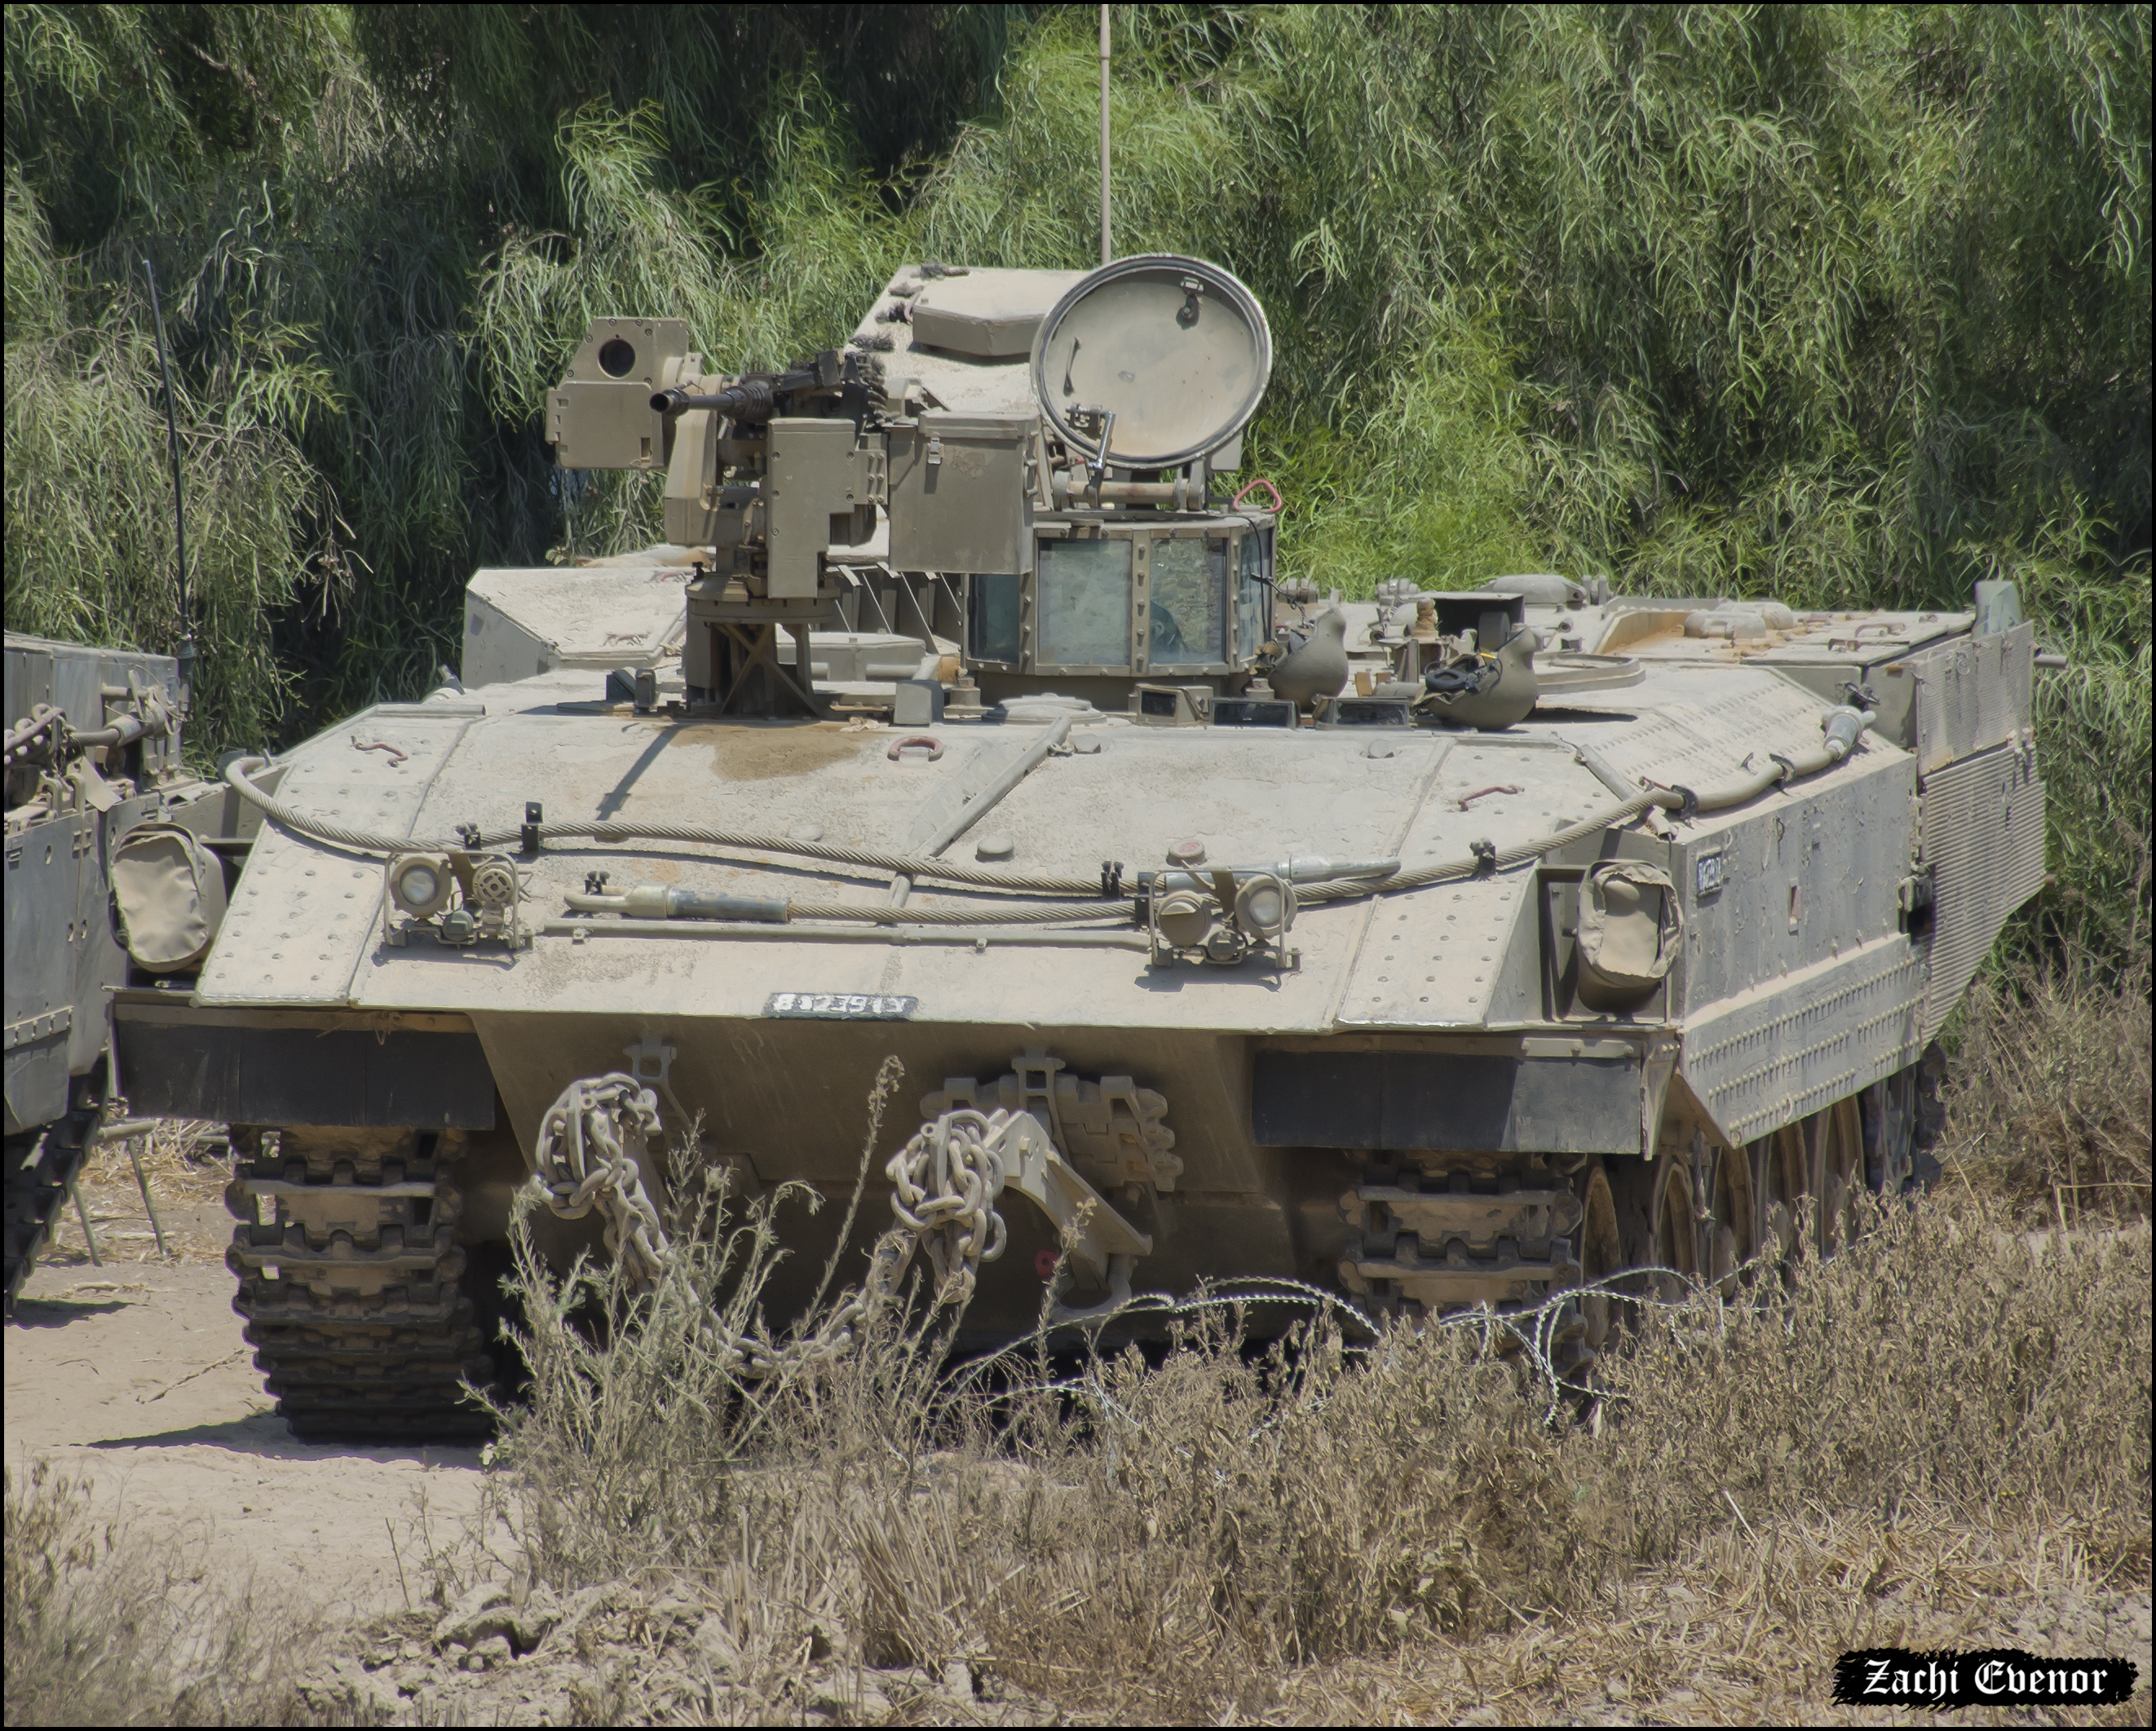 idf-achzarit-2016-zachi-evenor.jpg